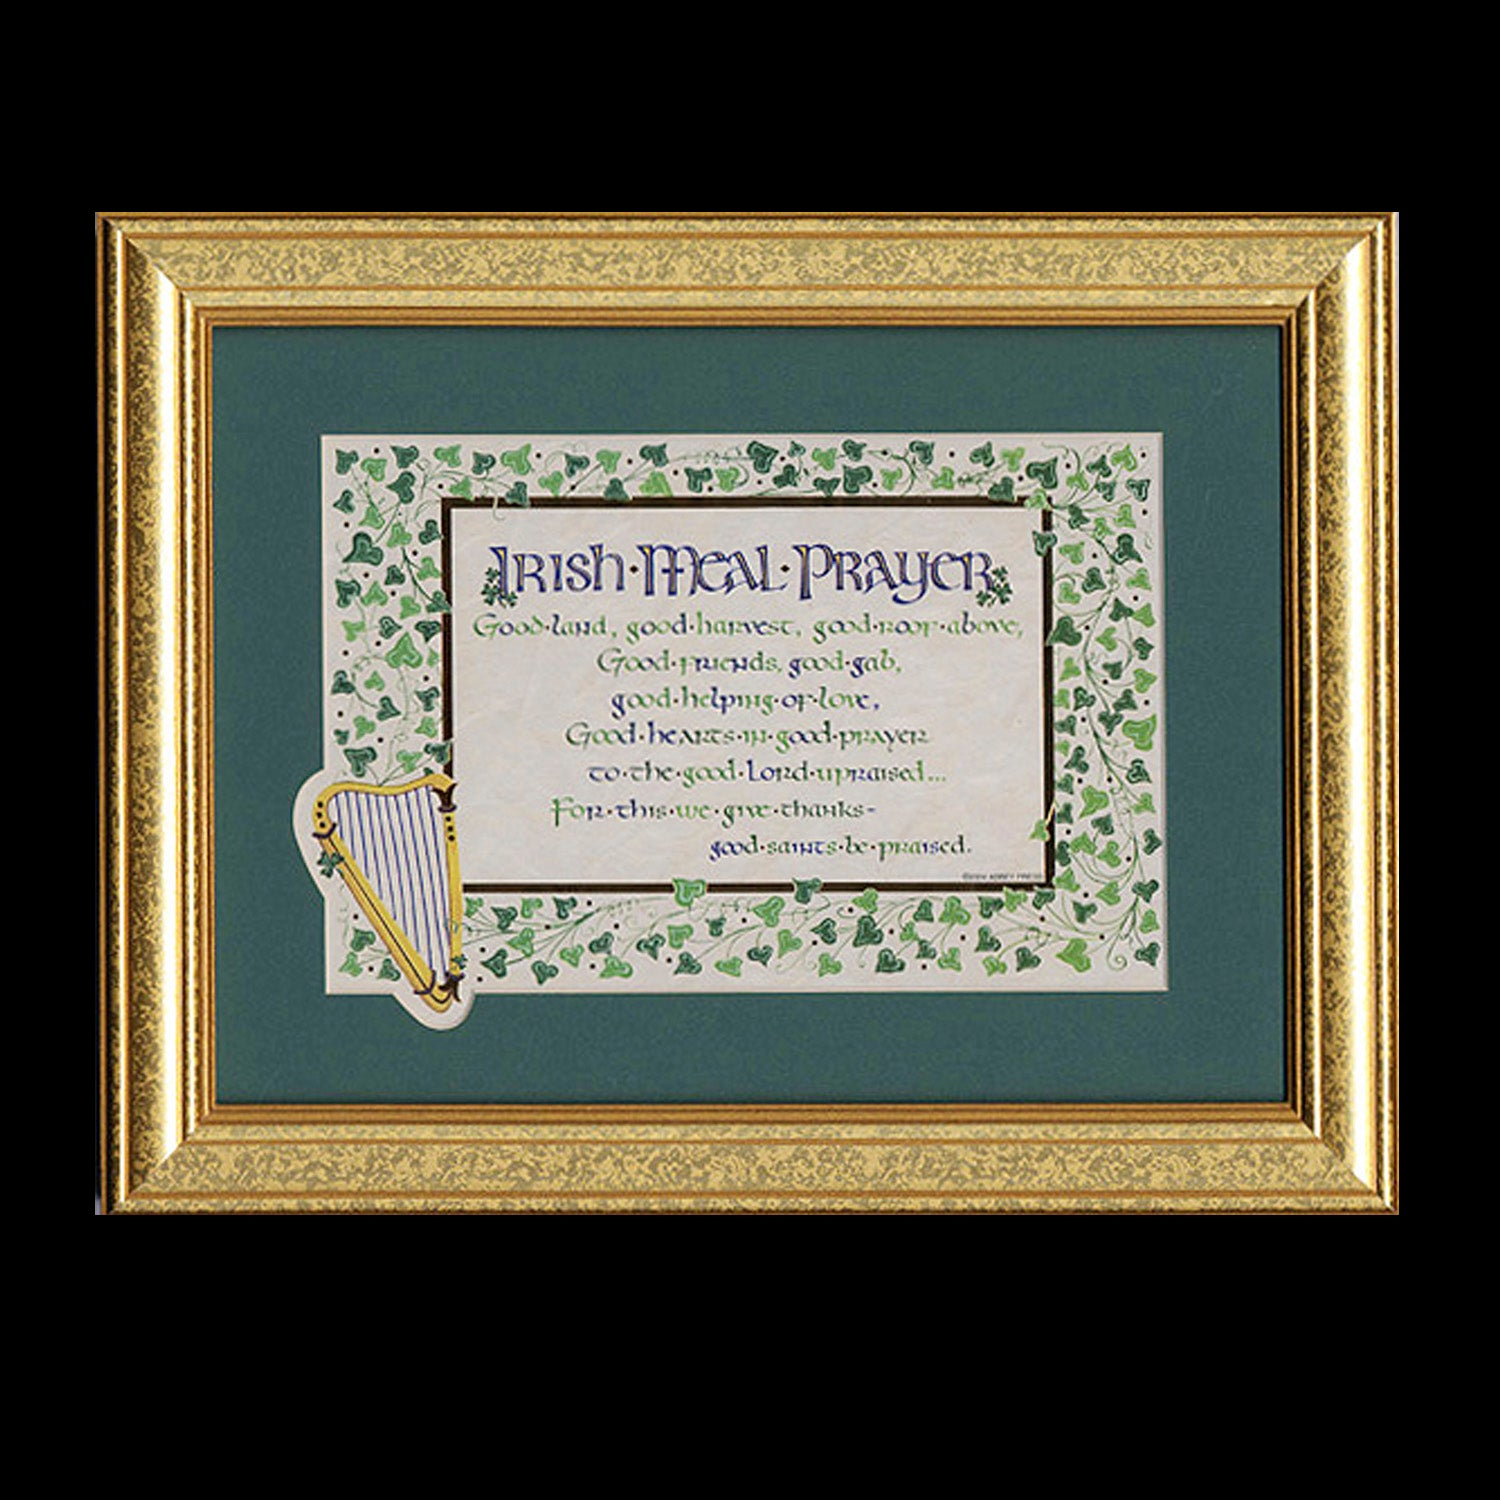 Irish Meal Prayer Framed Calligraphy Print Holly Monroe Calligrapher